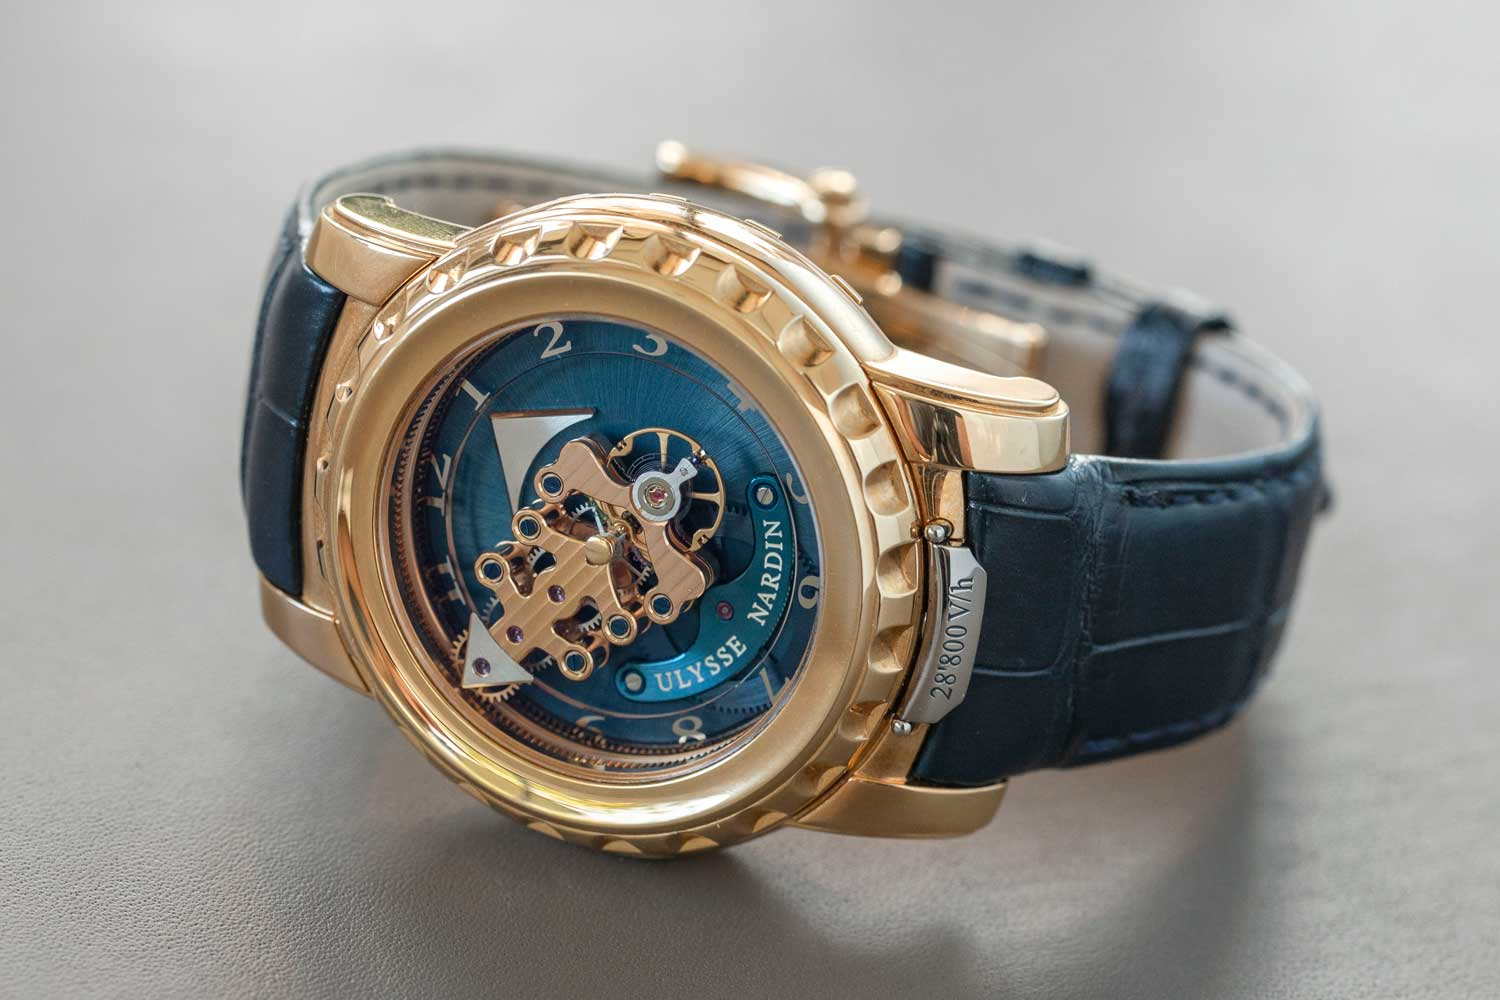 Santa Laura's first generation Ulysse Nardin Freak Ref. 026-88 (©Revolution)